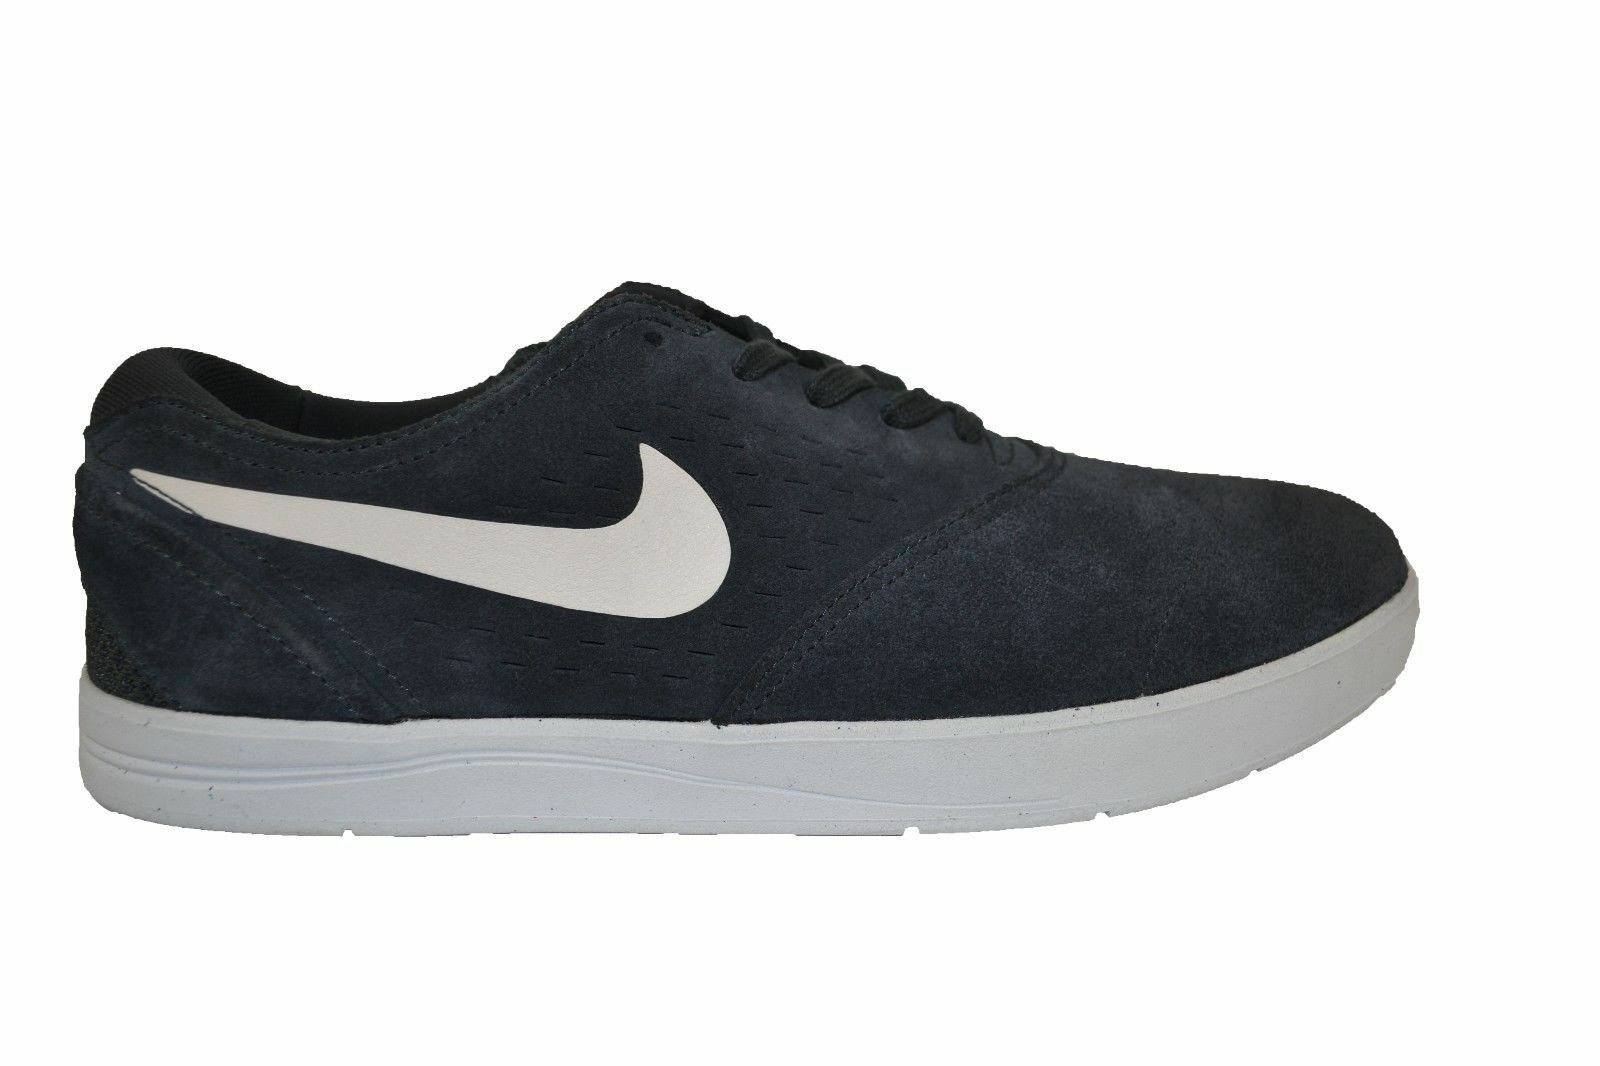 Nike ERIC KOSTON 2 Anthracite blanc Suede 580418-001 Skate  Hommes  Chaussures